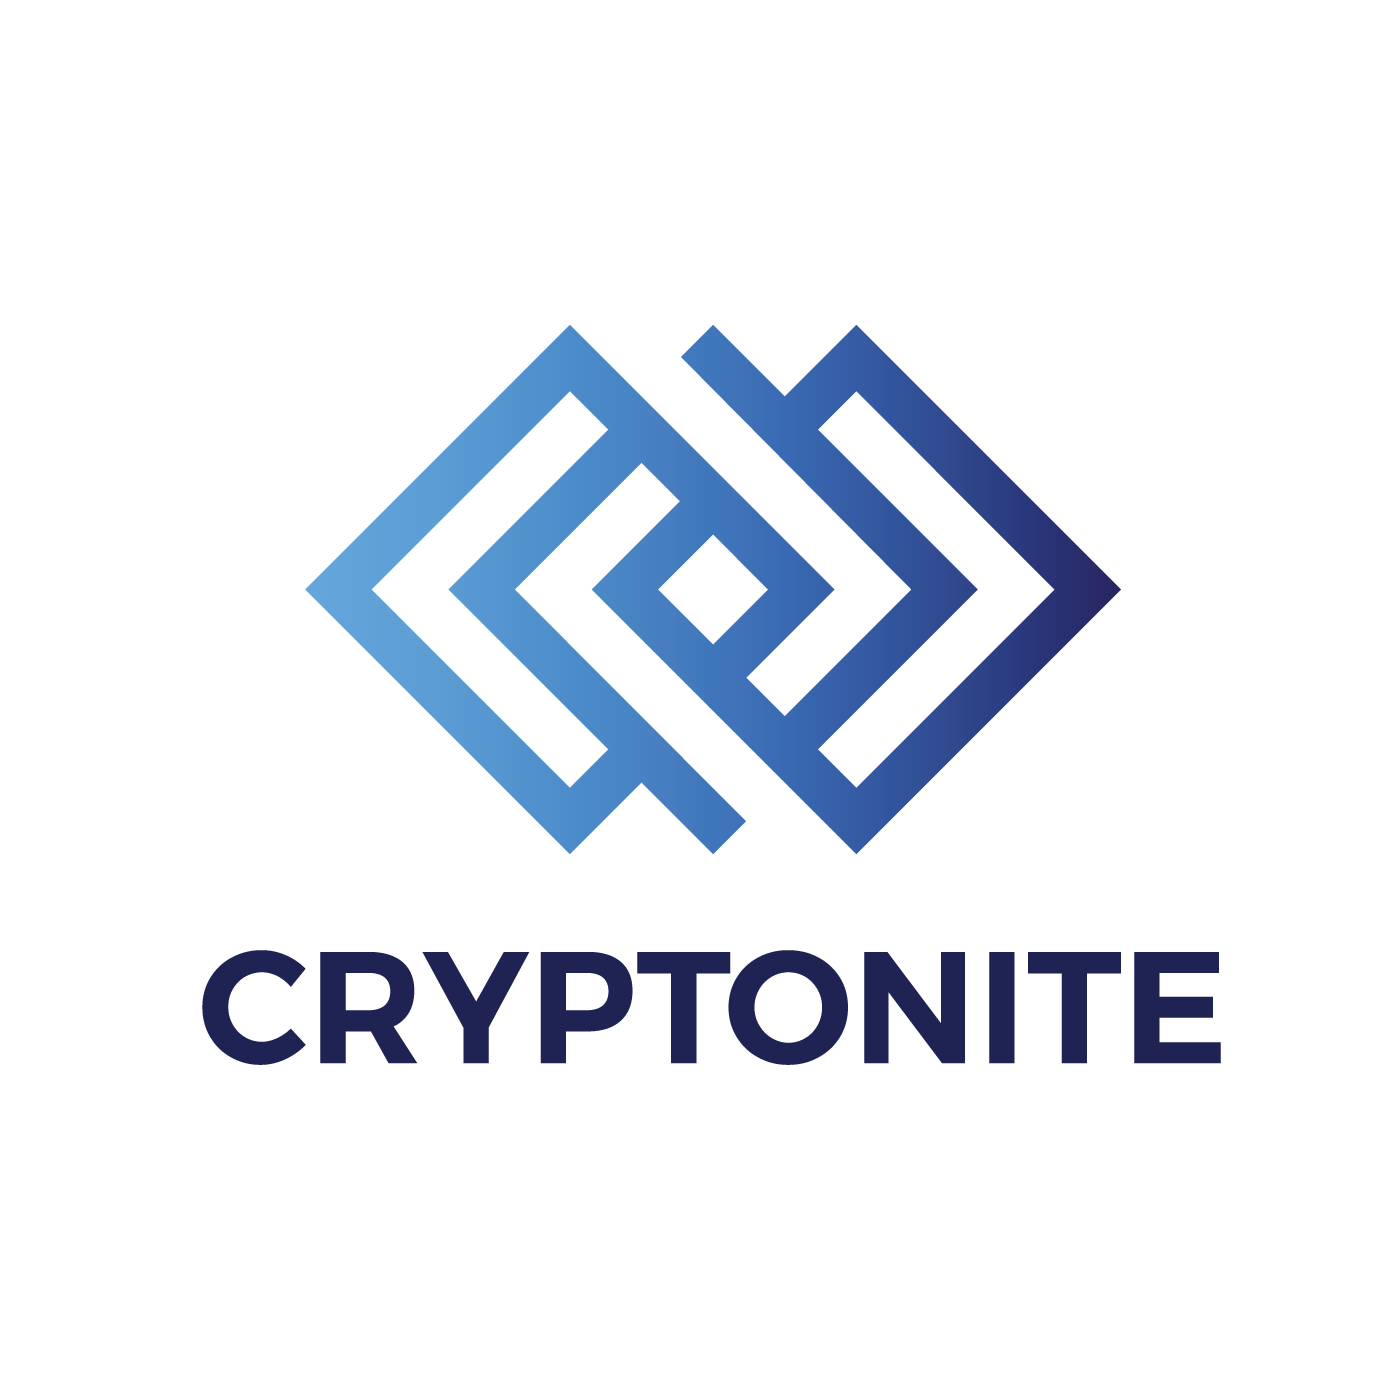 Cryptonite